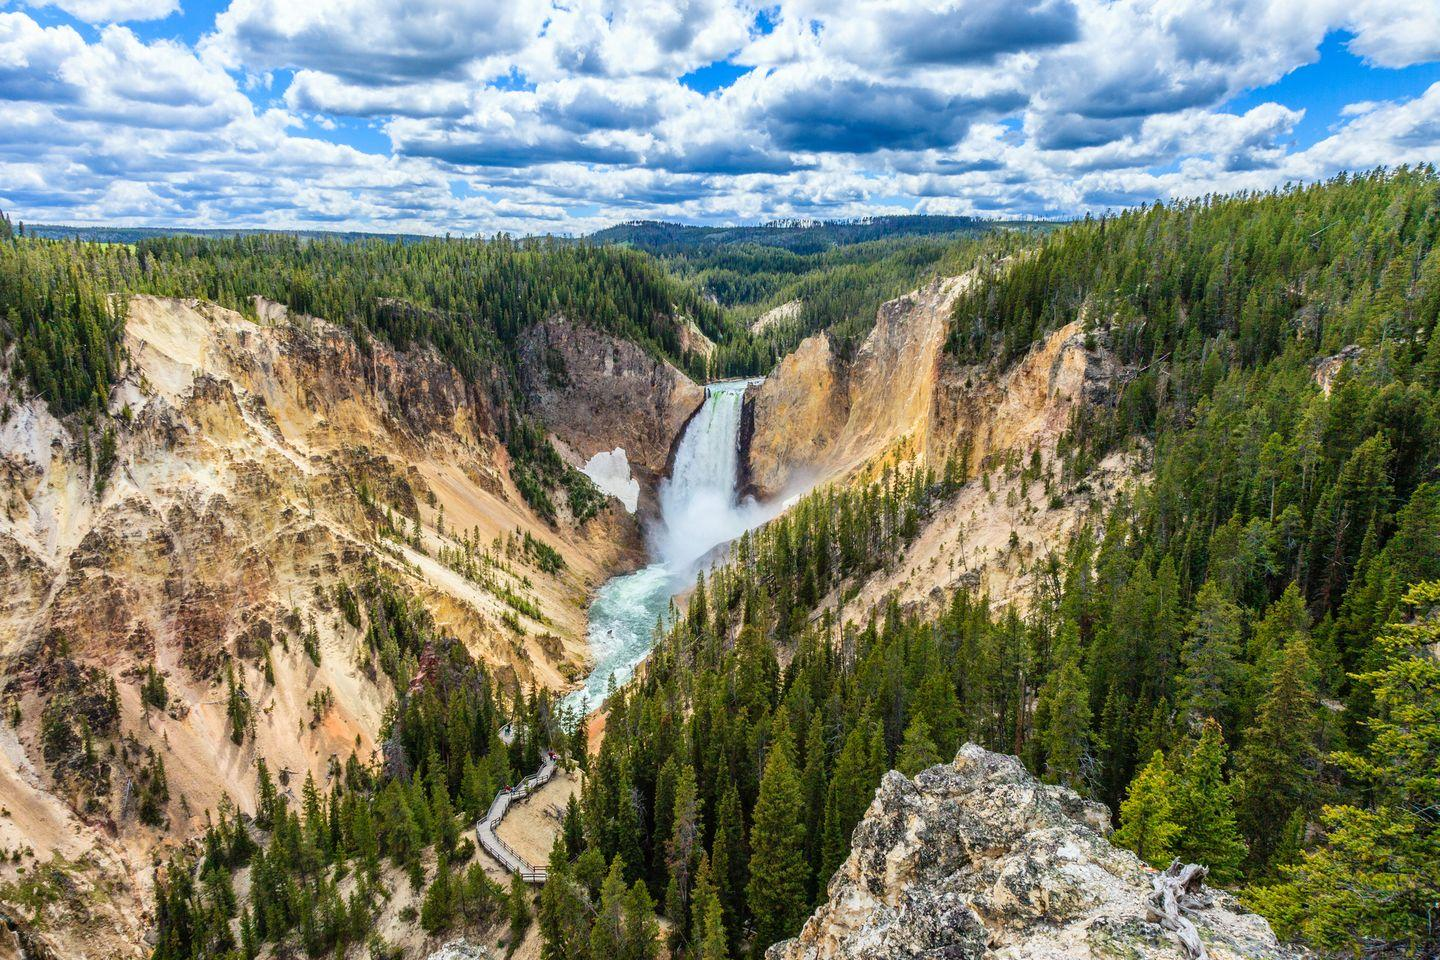 "<p>Yellowstone was established as the world's first national park in 1872, but it has been used for thousands of years as a place for tribes, bands, animals, and vegetation to flourish and call home. This magnificent park is home to world-famous sites, like Old Faithful, <a href=""https://www.veranda.com/travel/g33337870/most-colorful-places-in-the-world/"" rel=""nofollow noopener"" target=""_blank"" data-ylk=""slk:Grand Prismatic Spring"" class=""link rapid-noclick-resp"">Grand Prismatic Spring</a>, and the Grand Canyon of Yellowstone (shown here). </p>"